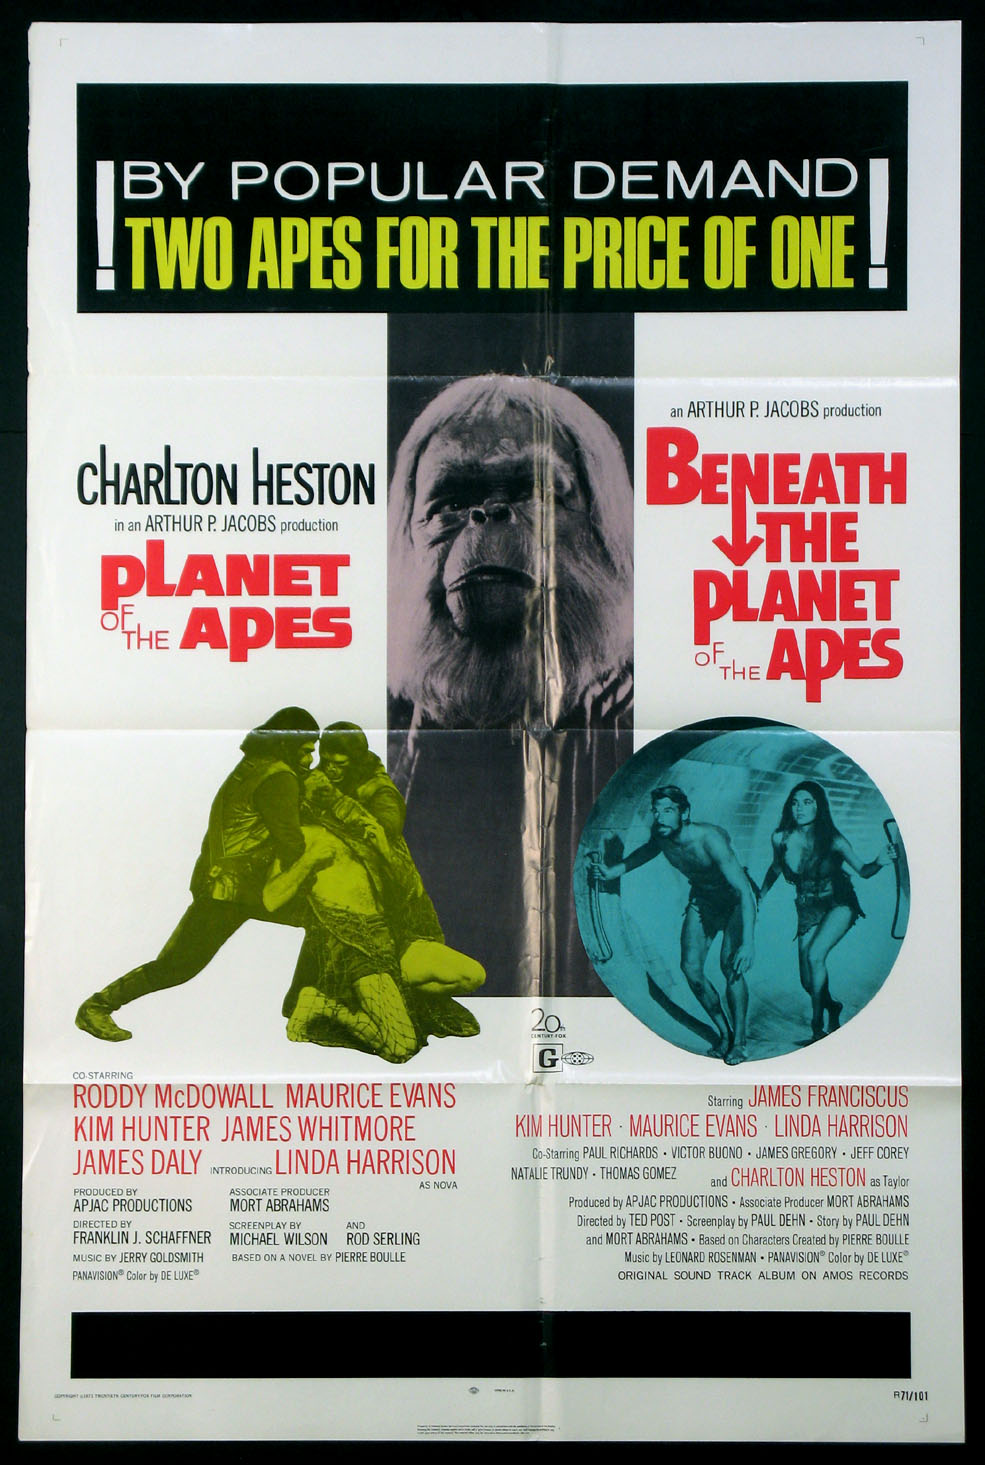 PLANET OF THE APES / BENEATH THE PLANET OF THE APES @ FilmPosters.com